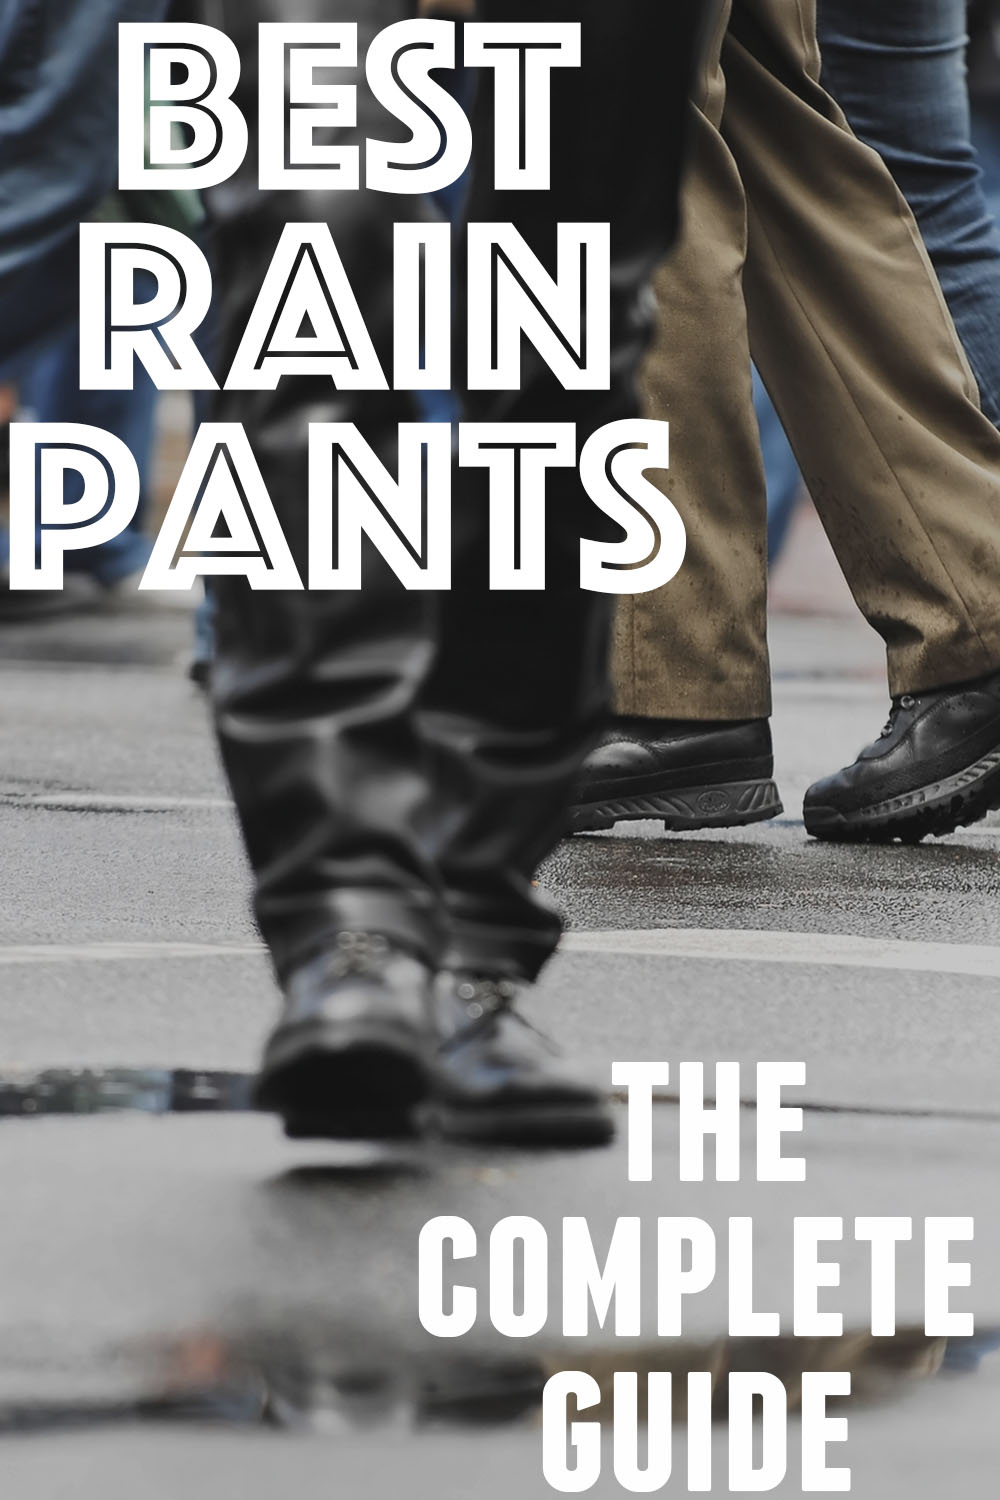 Best Rain Pants: The Complete Guide